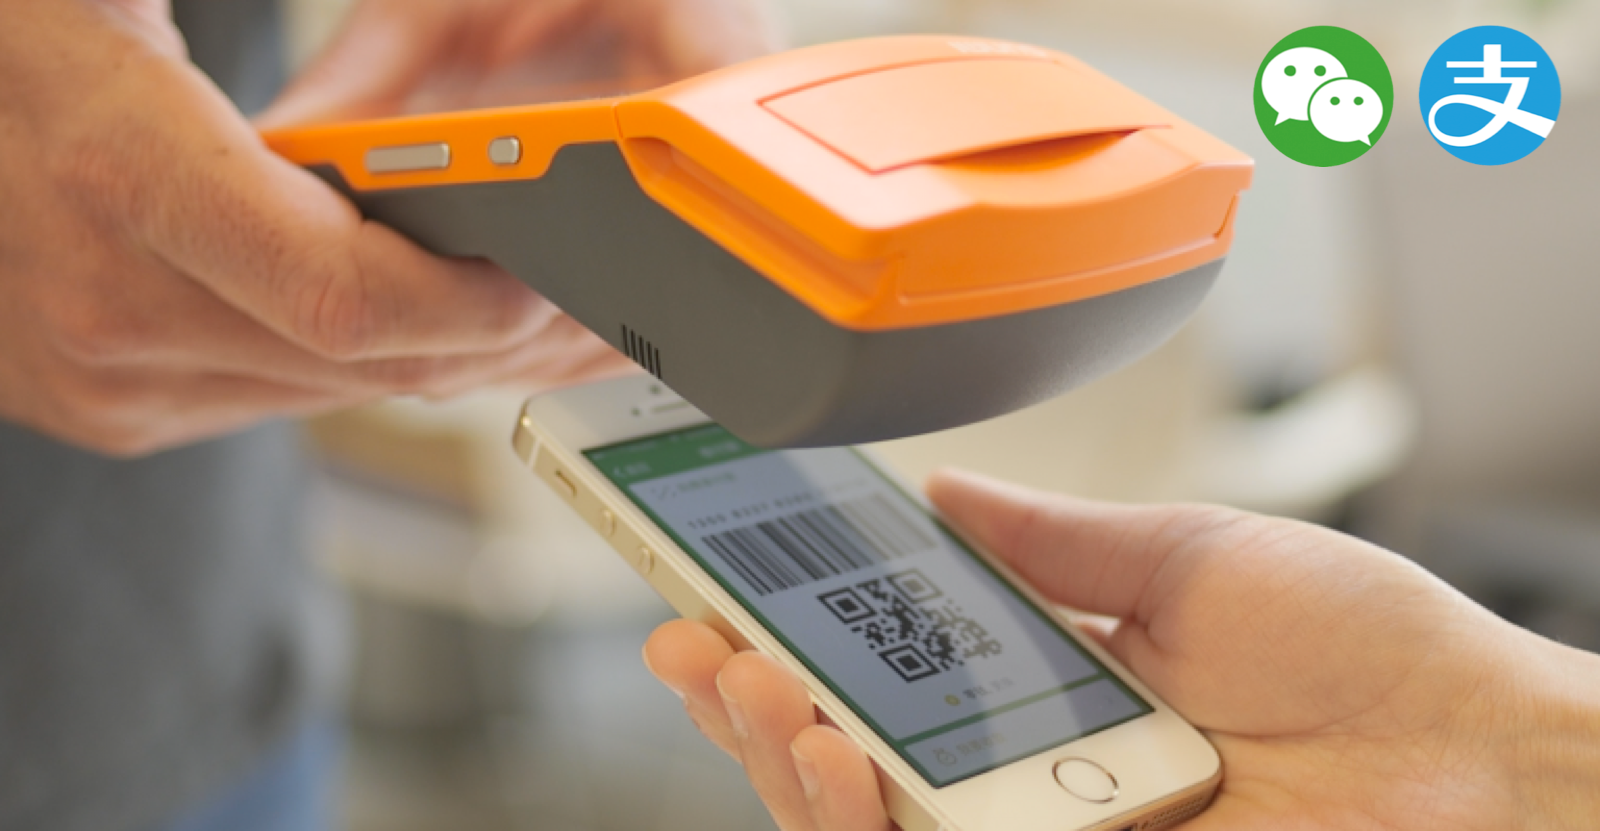 Citcon Brings China's Mobile Payment Giants Alipay and